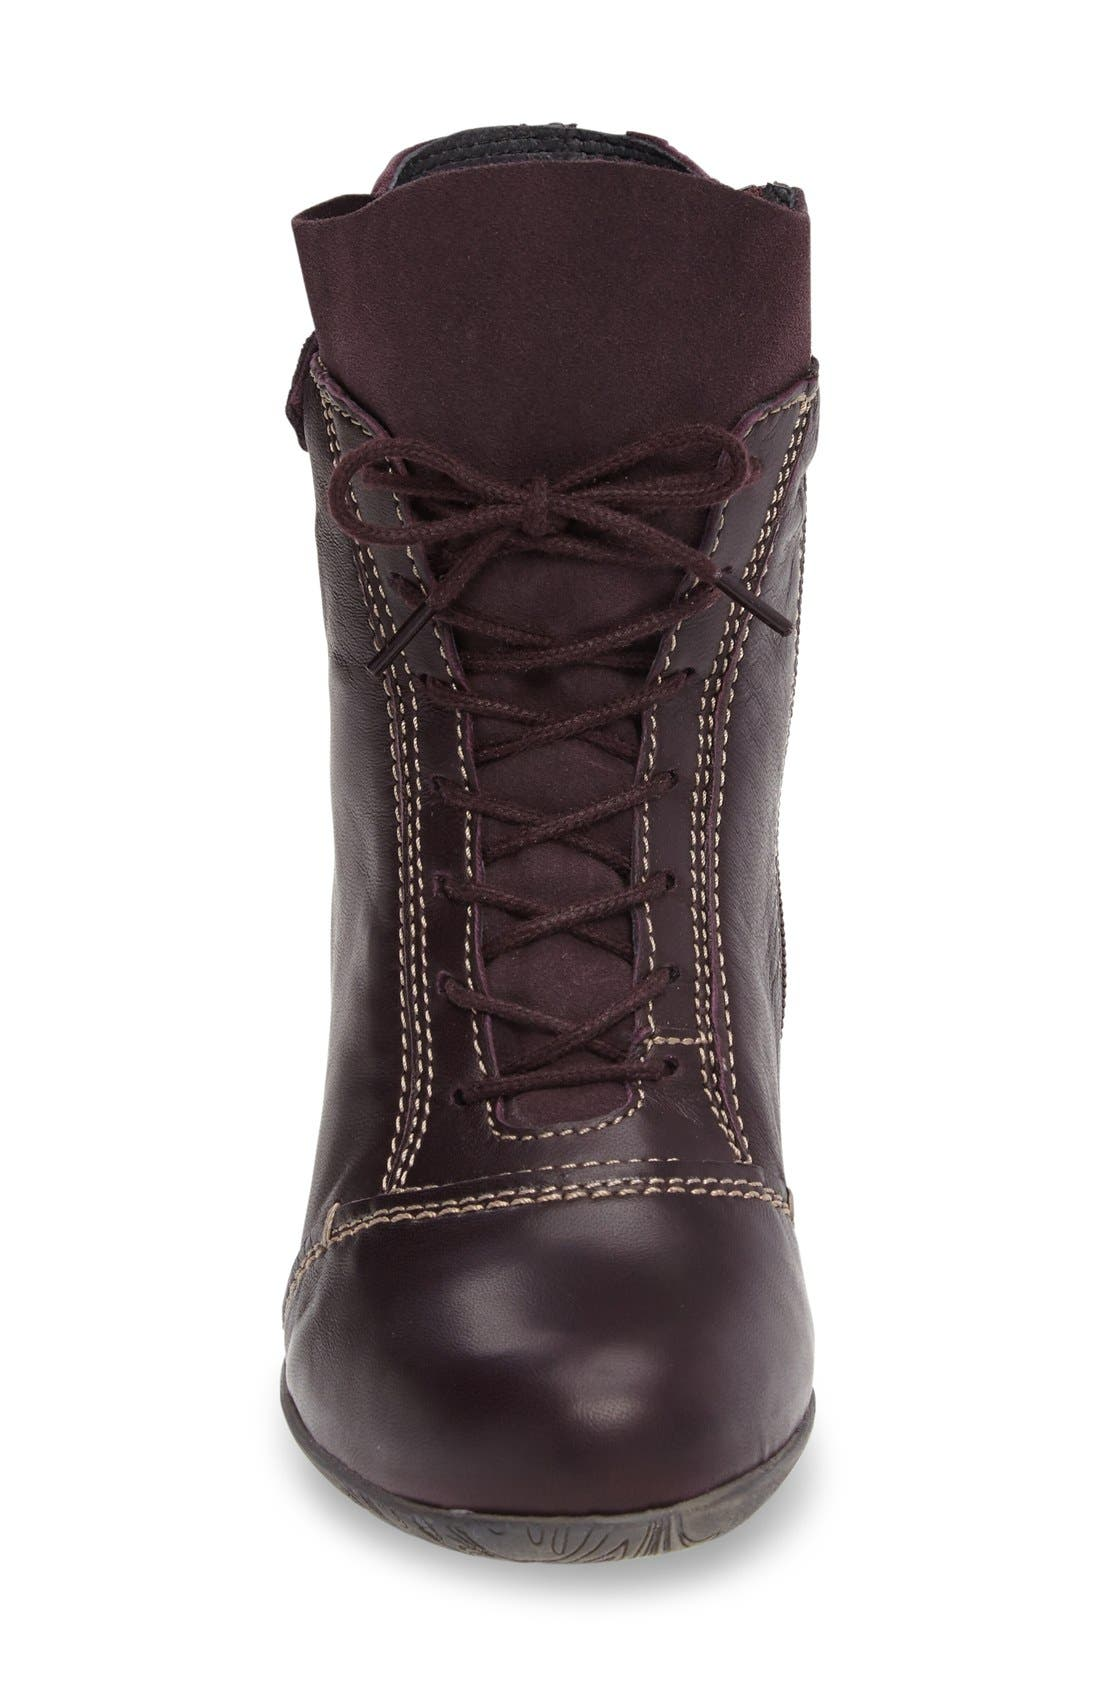 'Jesse' Lace-Up Bootie,                             Alternate thumbnail 3, color,                             Aubergine Leather